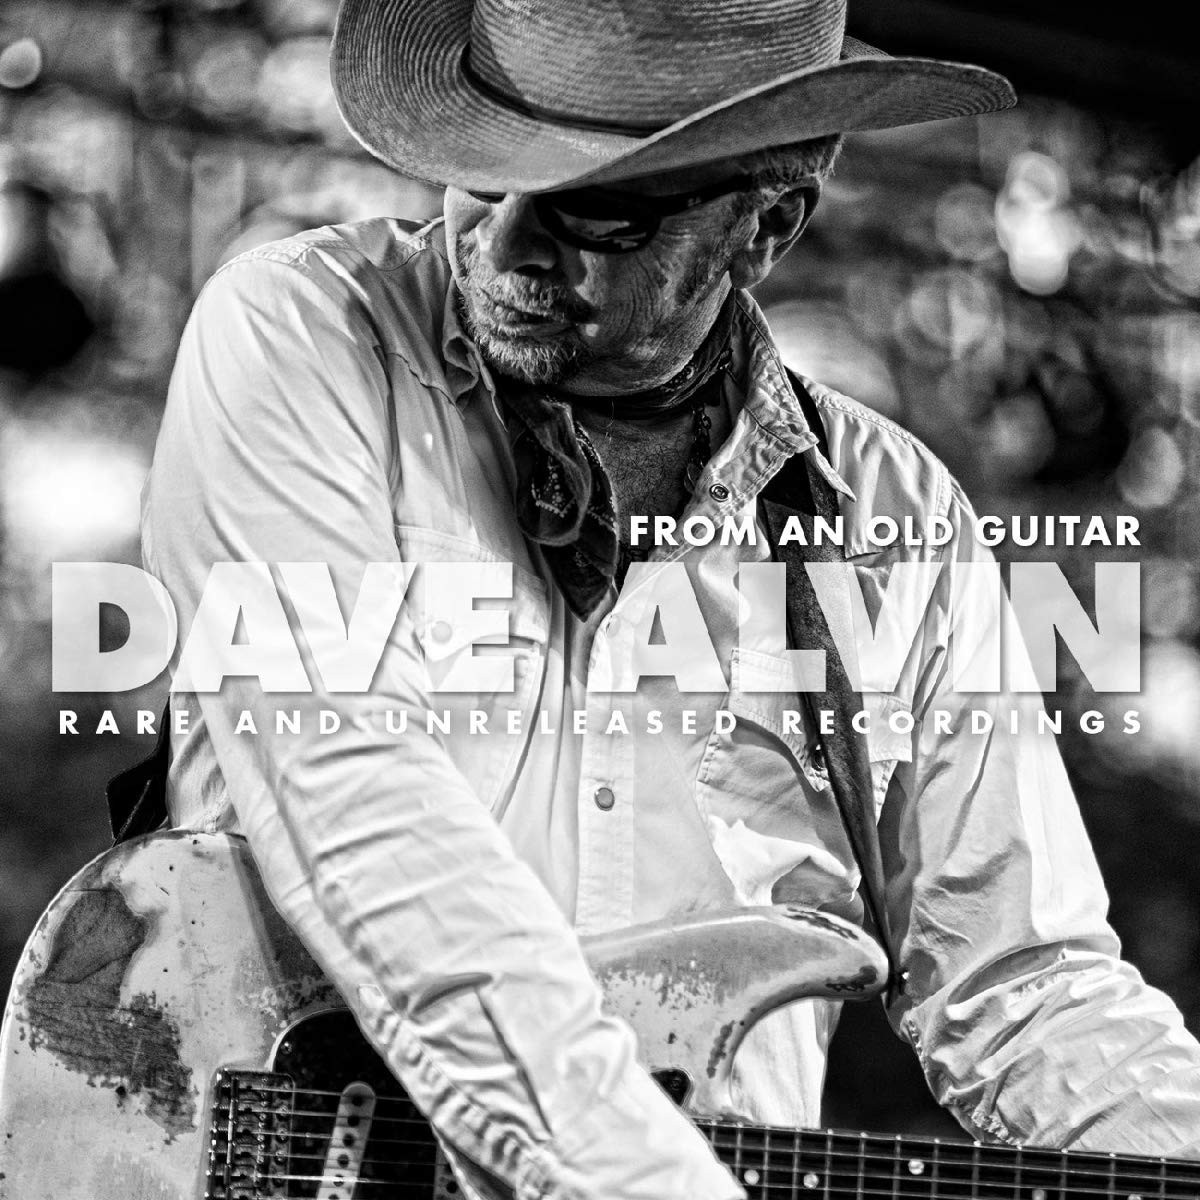 Dave Alvin - From An Old Guitar, Rare And Unreleased Recordings